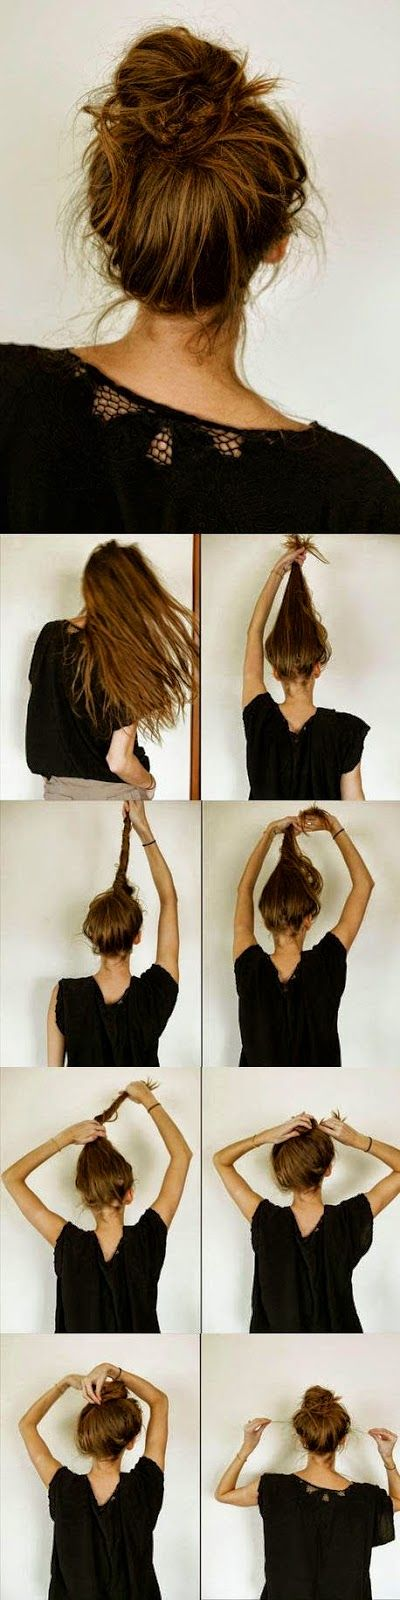 5 Trendy Low Bun Updo Hairstyles Tutorials